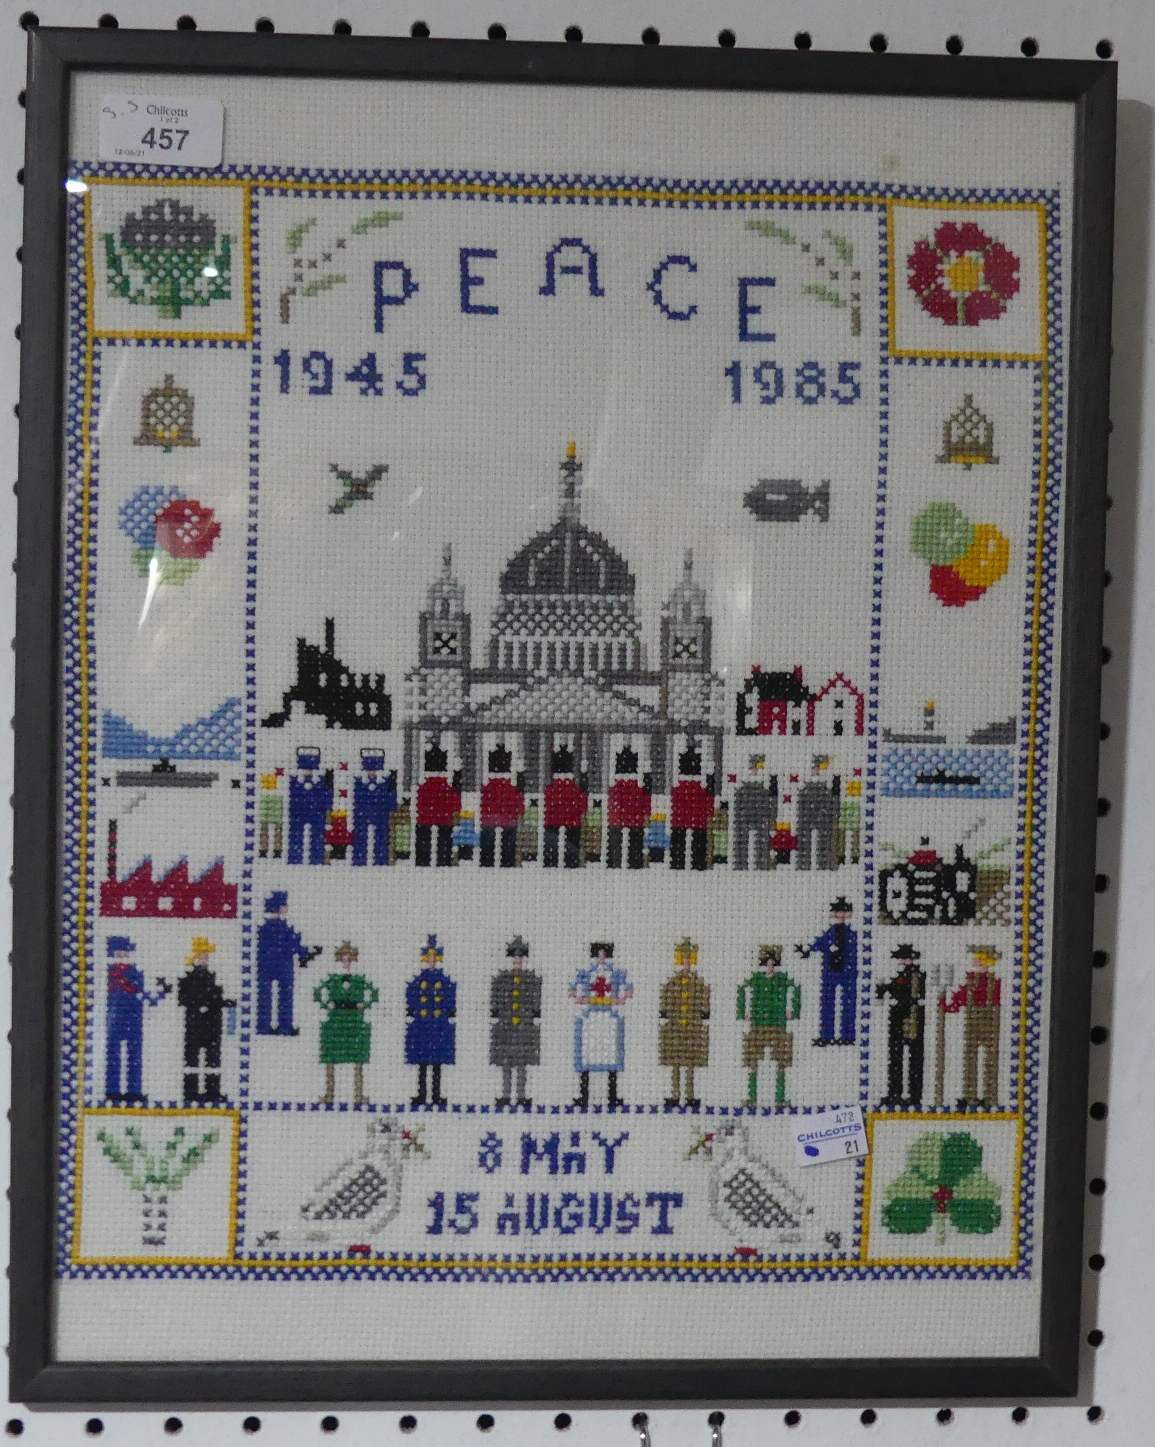 A framed and glazed commemorative Embroidery, commemorating forty years since the end of WWII,